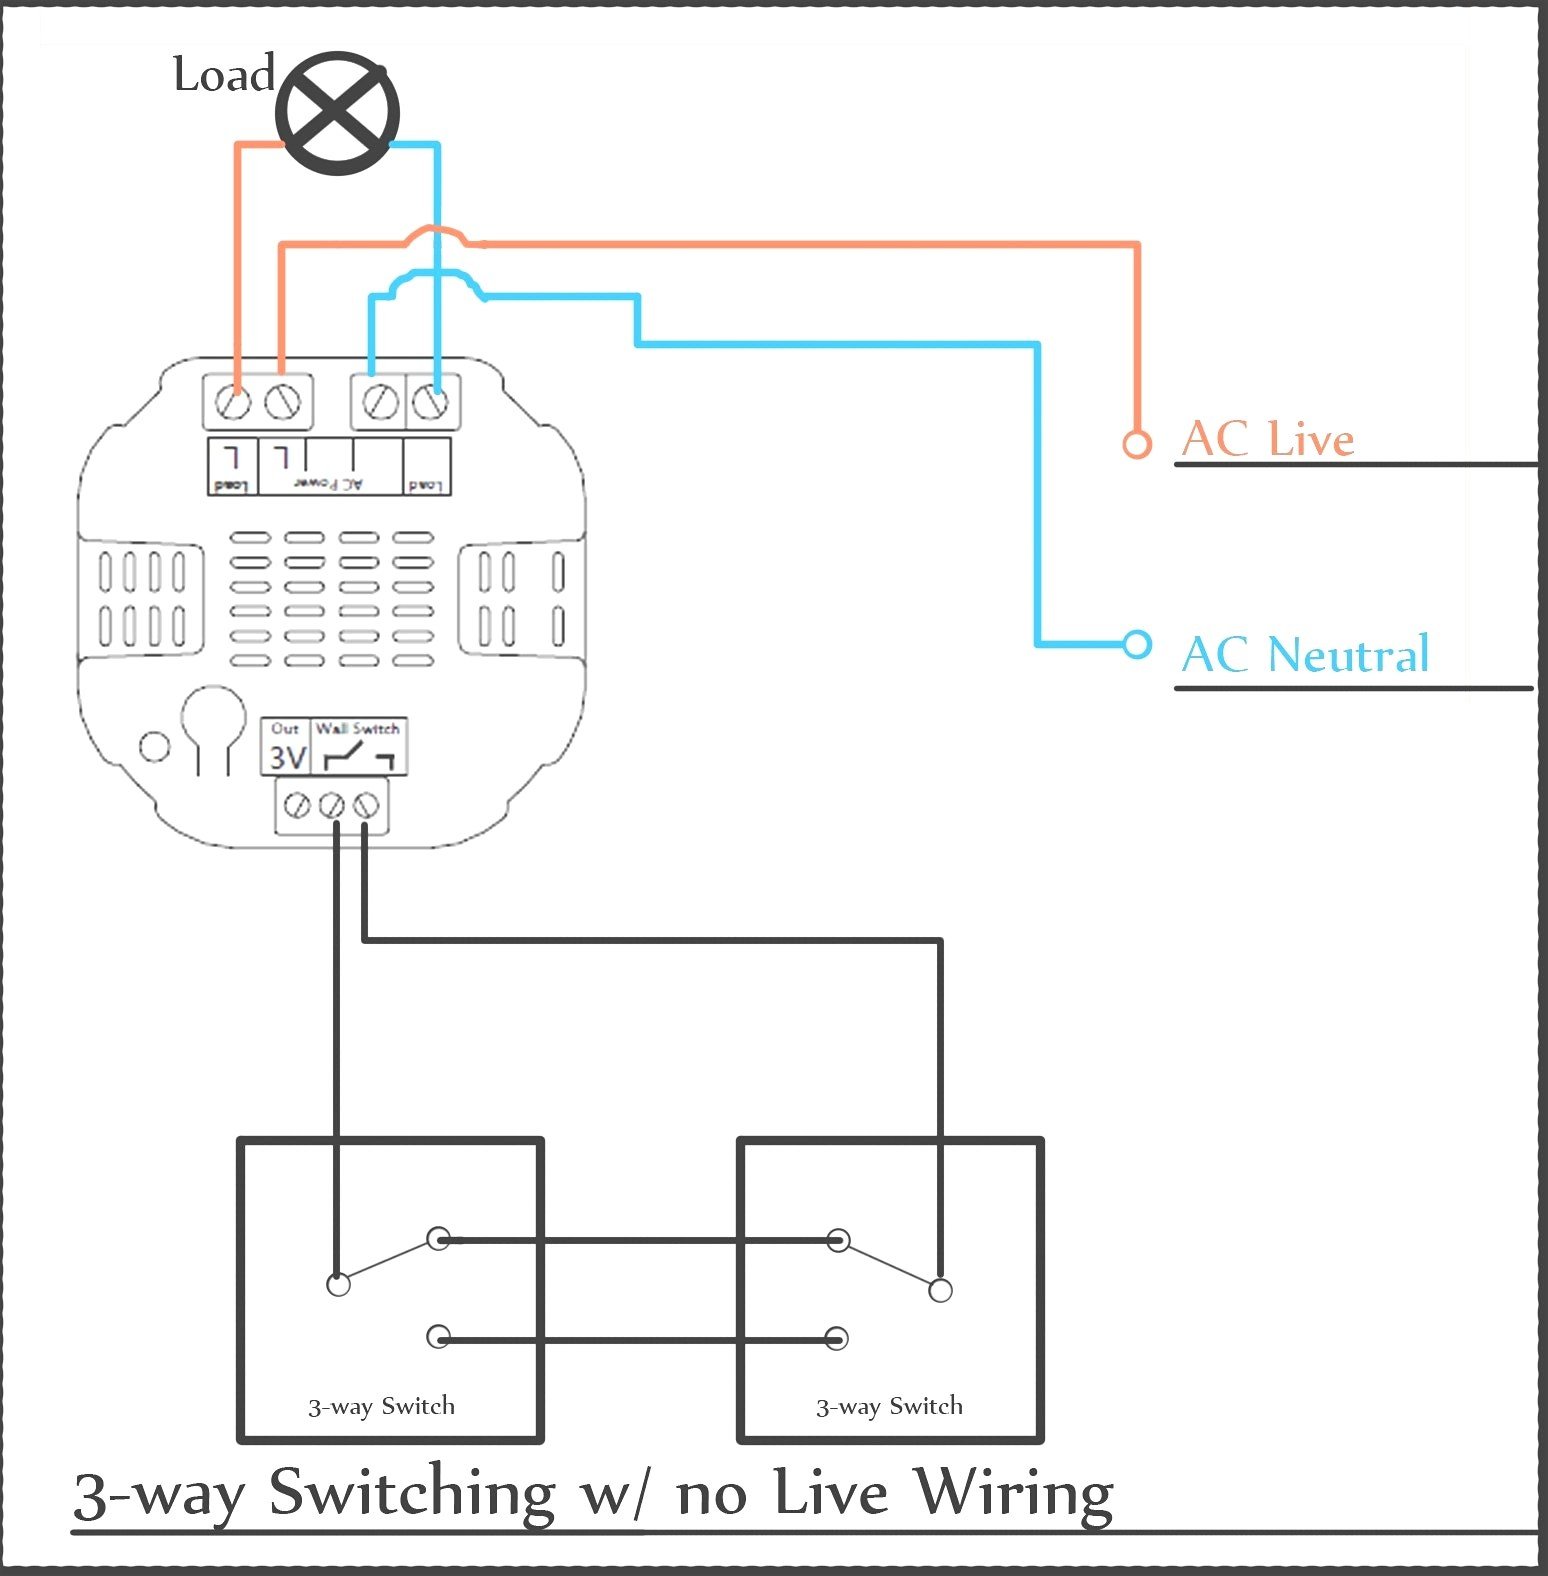 Leviton Dimmers Wiring Diagram Leviton Dimmers Wiring Diagram B2network Of Leviton Dimmers Wiring Diagram